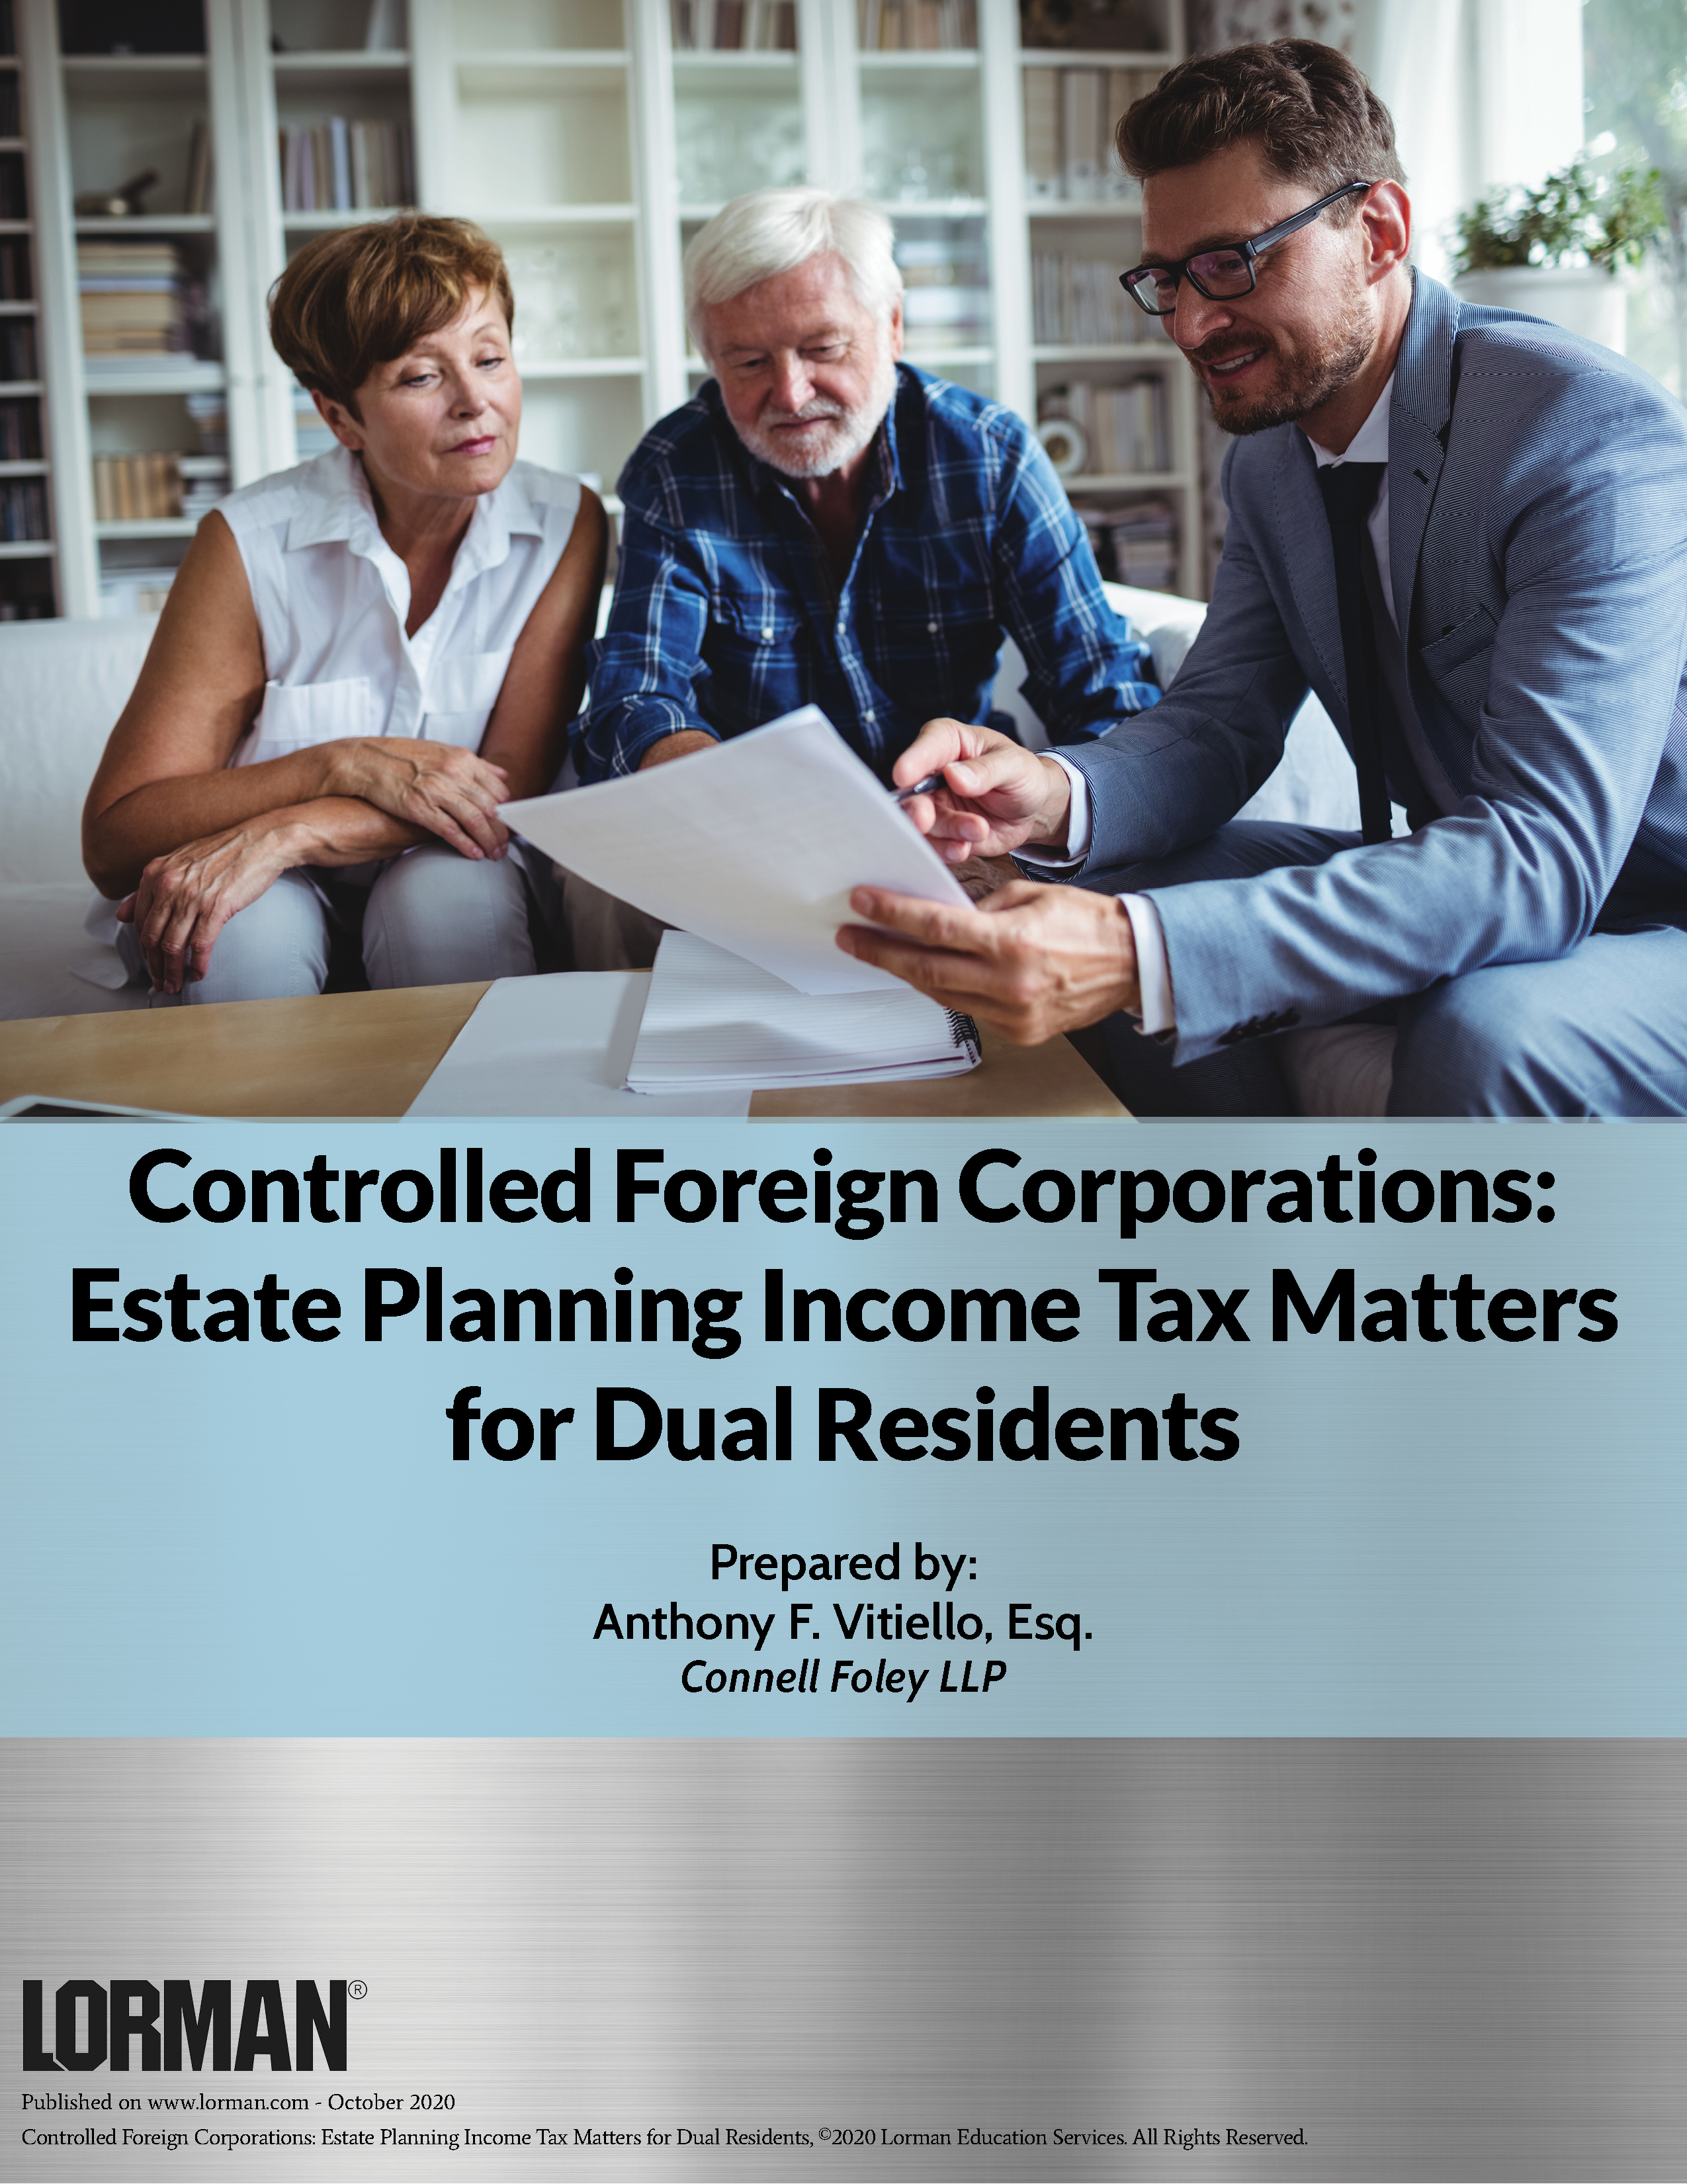 Controlled Foreign Corporations: Estate Planning Income Tax Matters for Dual Residents